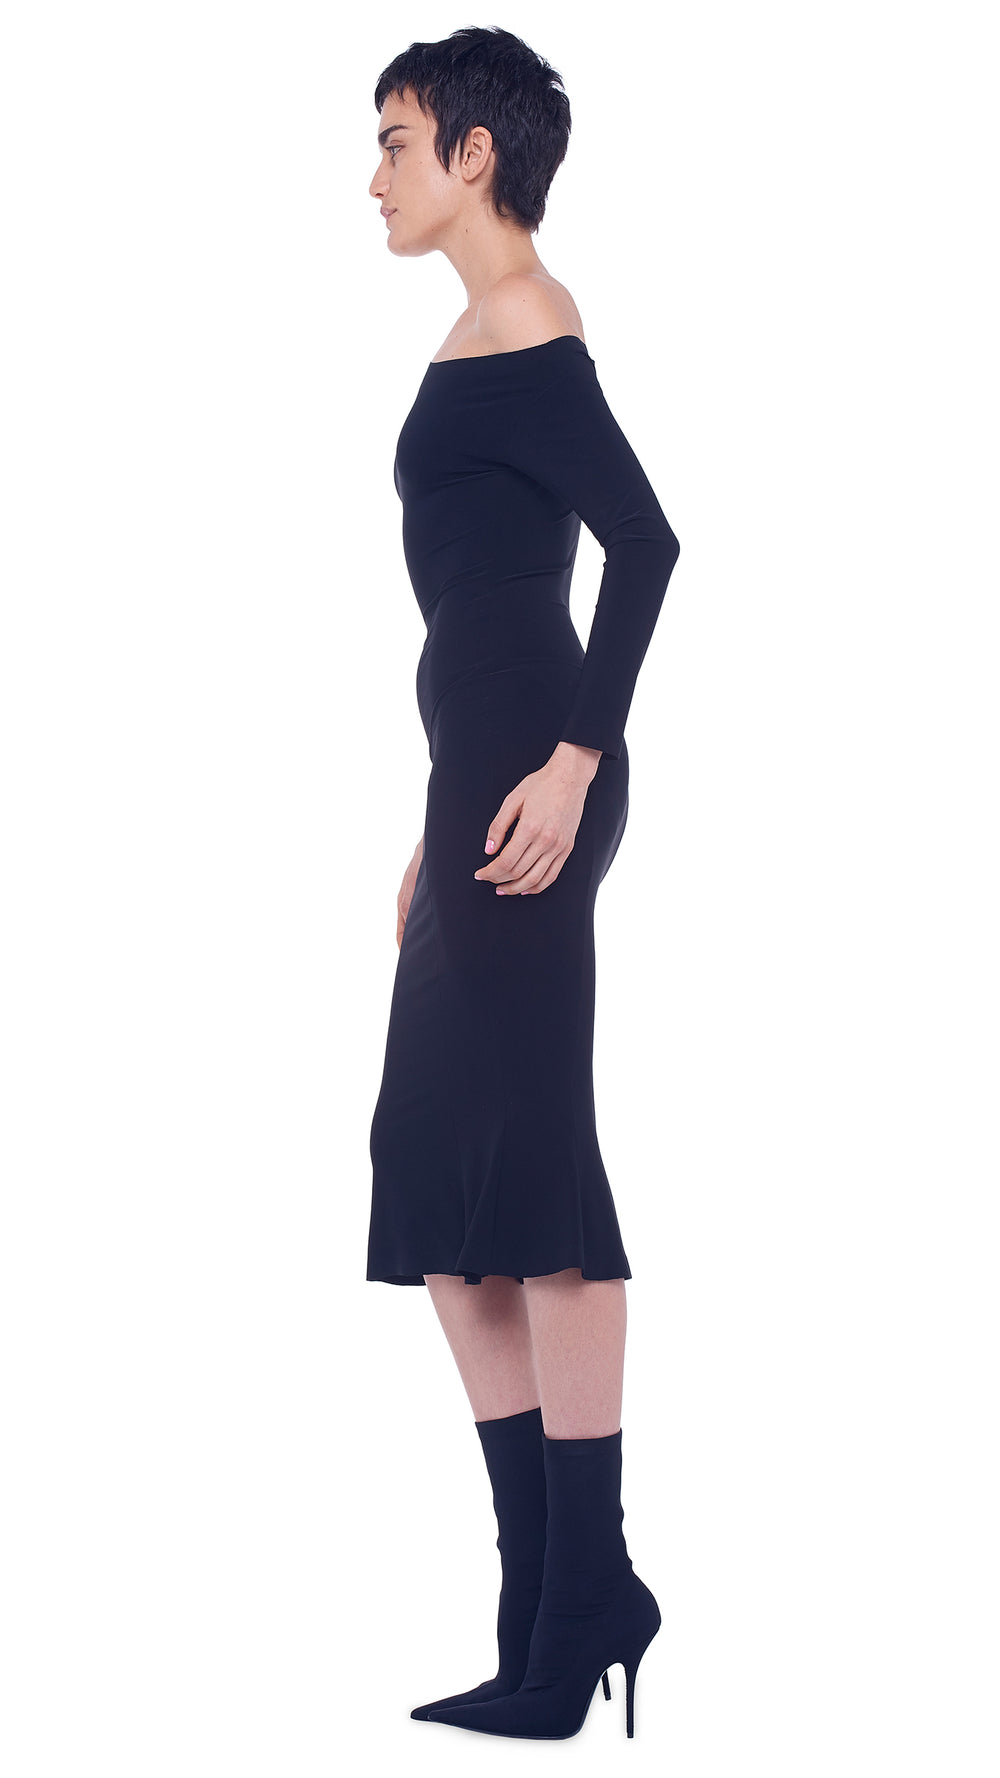 LONG SLEEVE DROP SHOULDER FISHTAIL DRESS TO MIDCALF